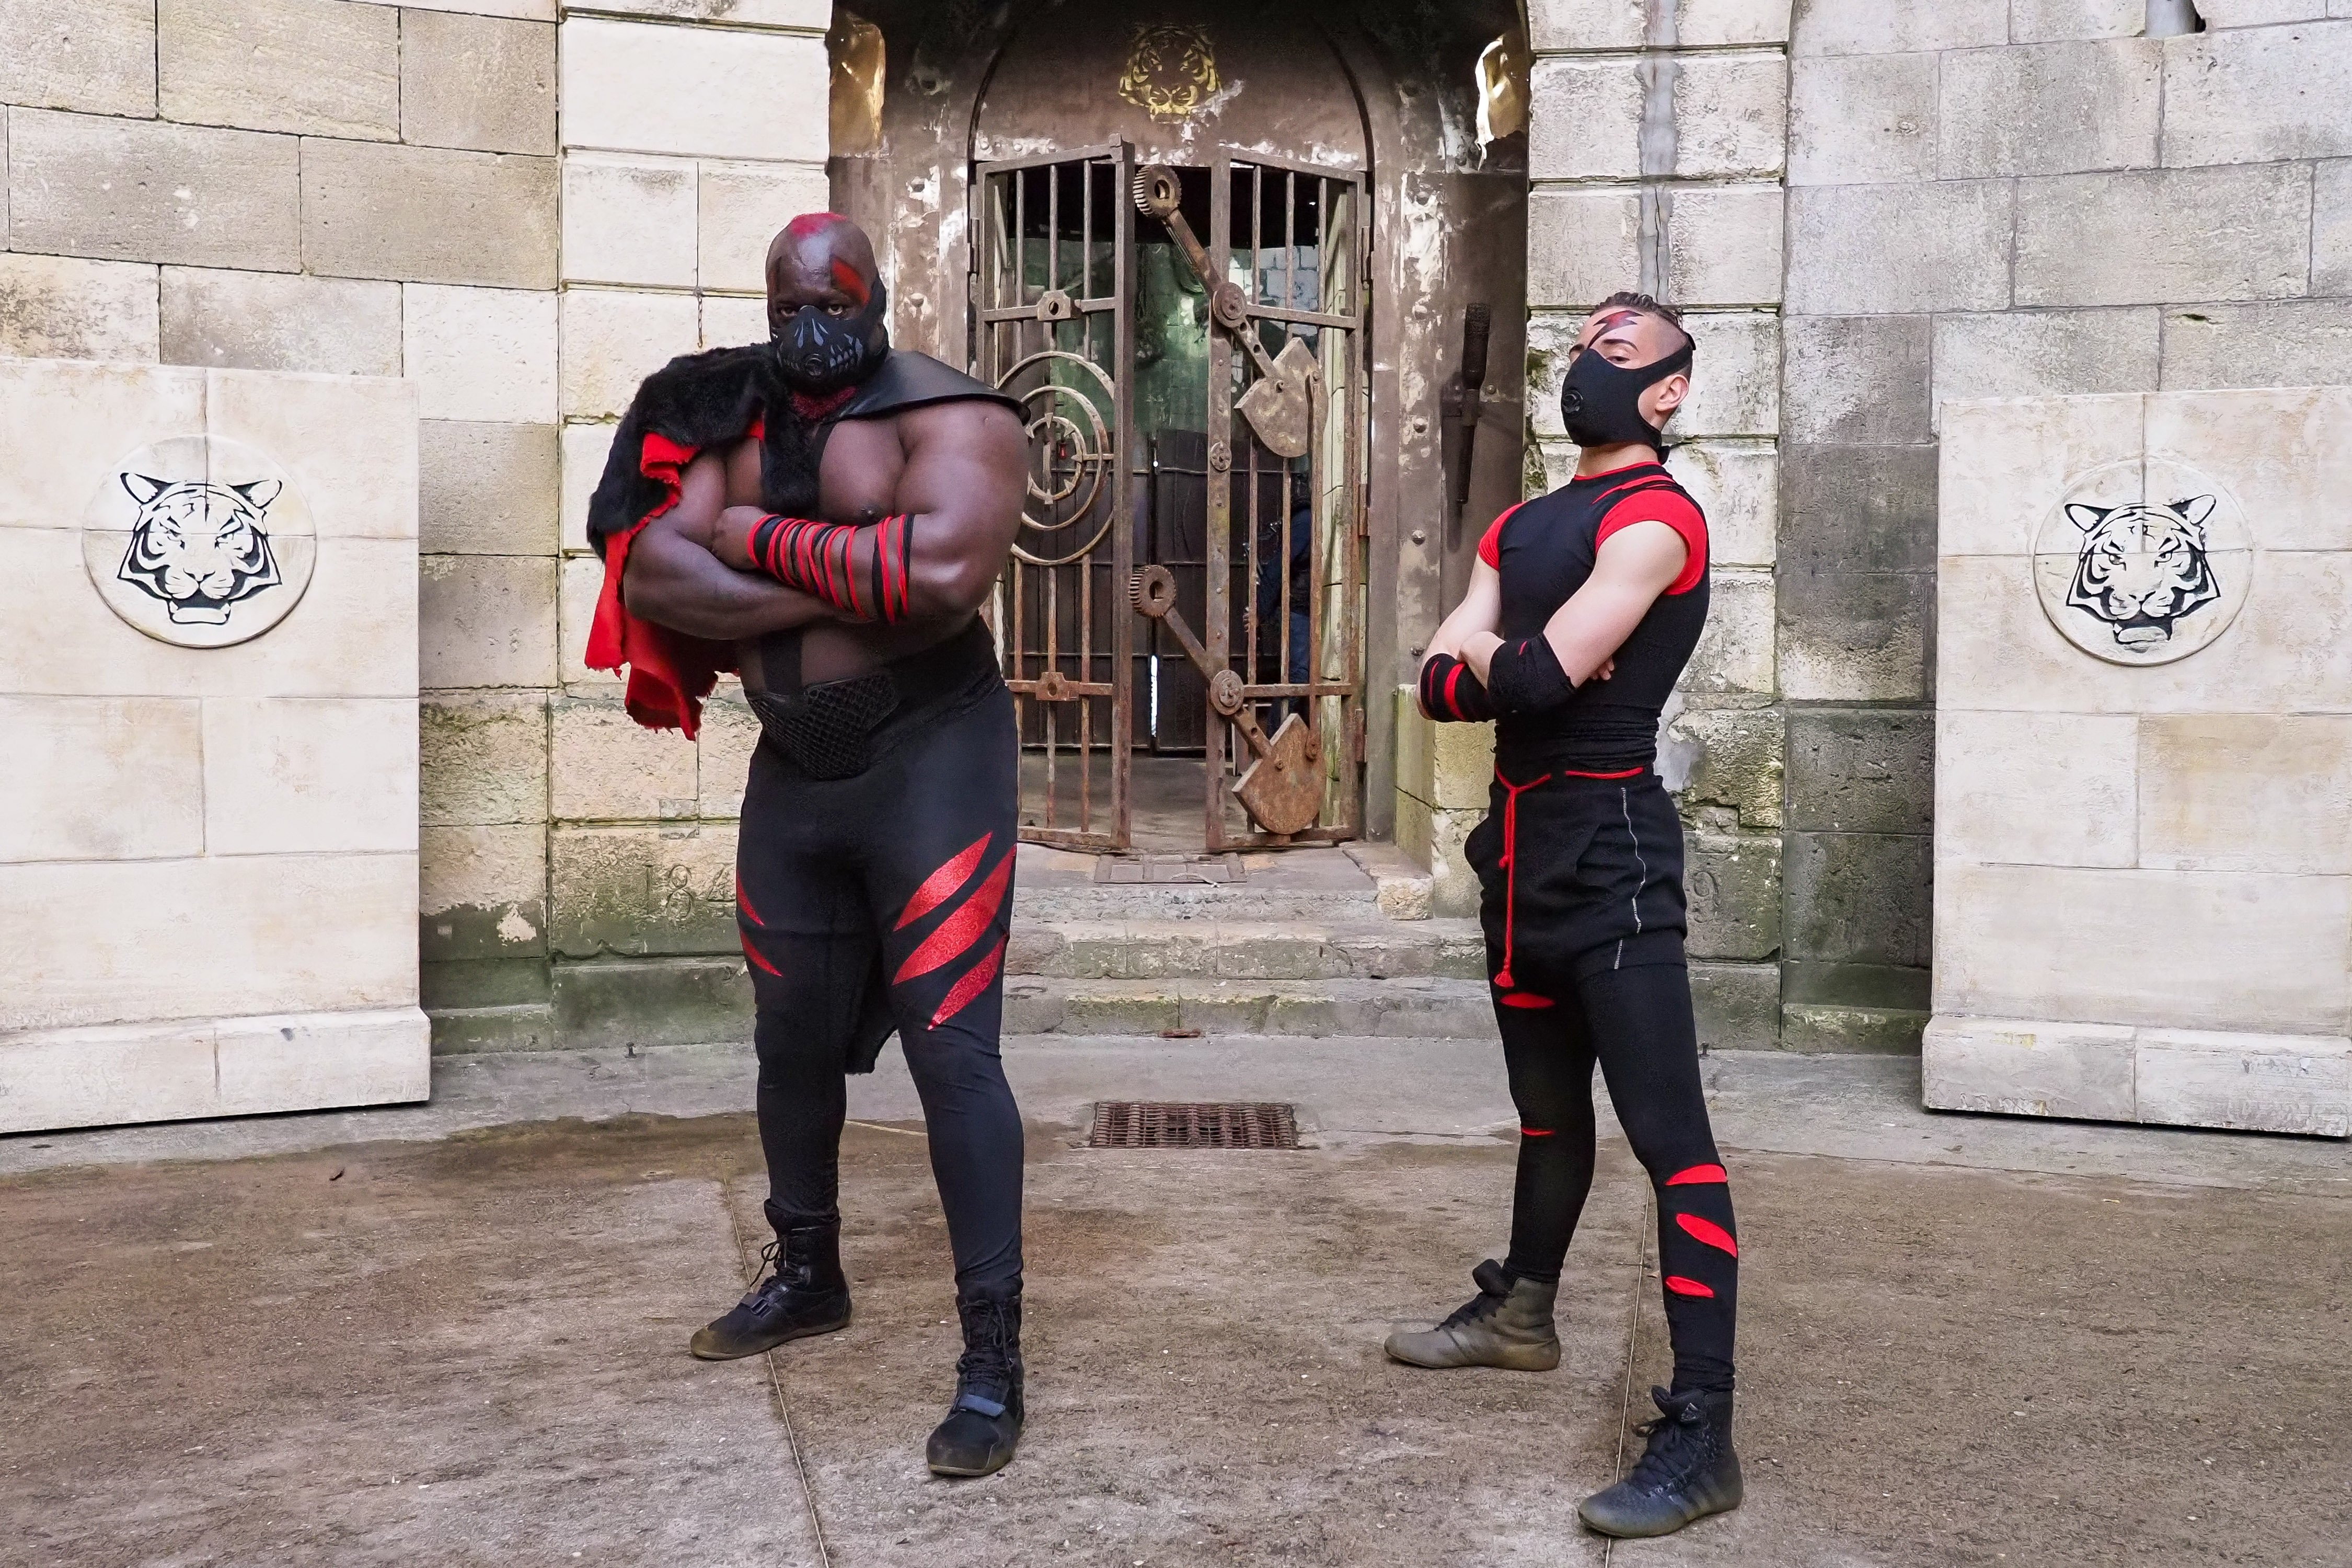 fort_boyard_2020_big_et_little_boo_5ef4c74f52017.jpg